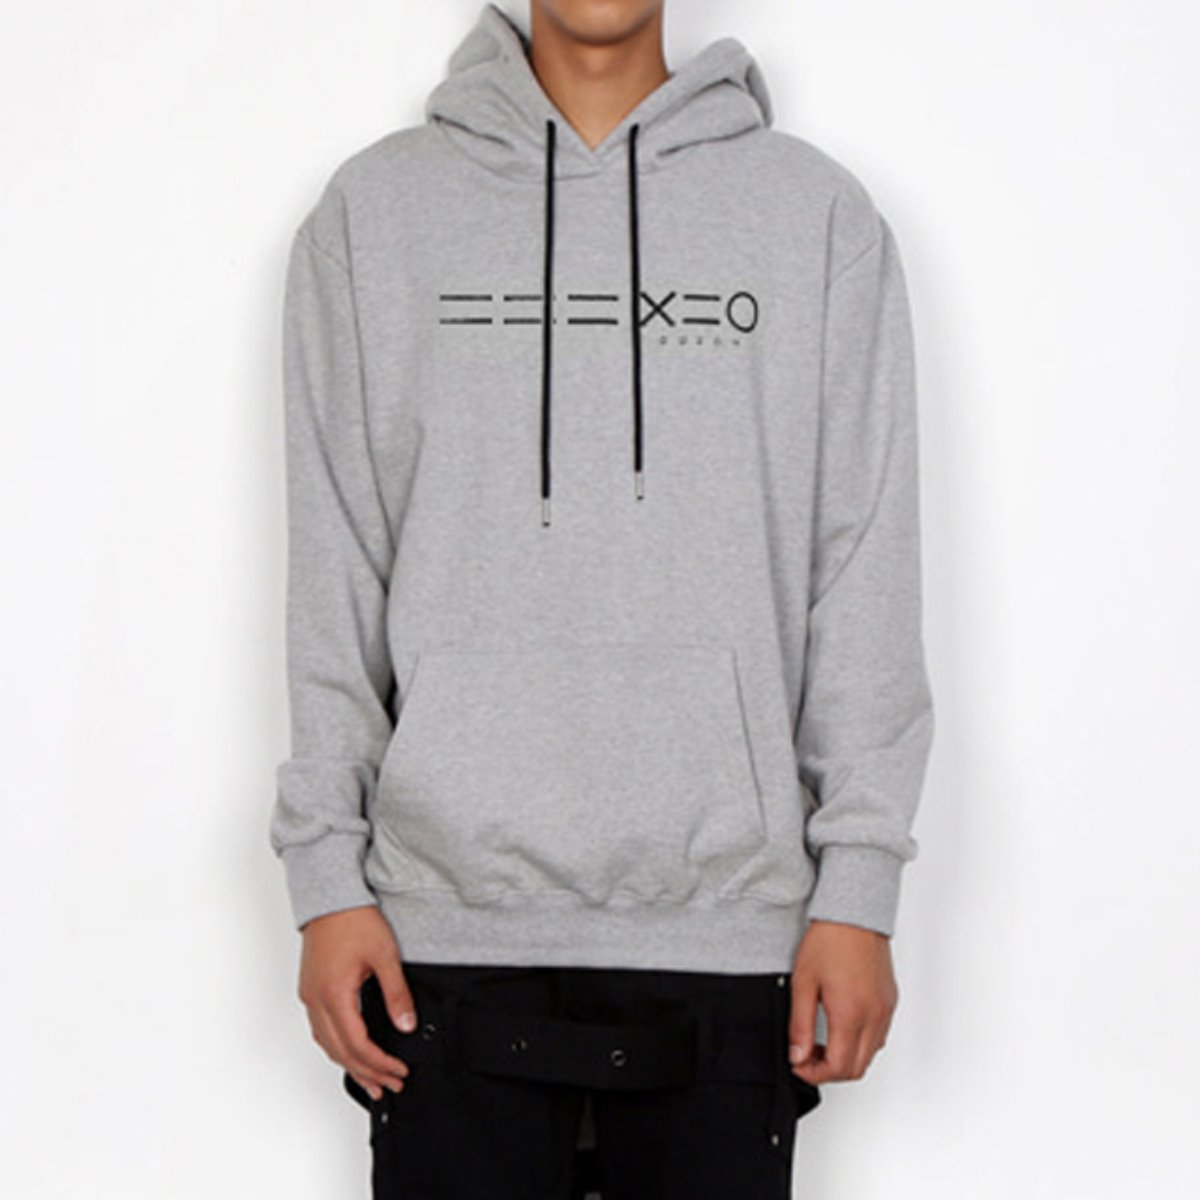 BLACK 3 EQUAL LINE & LOGO HOODIE SWEATSHIRTS(GREY)